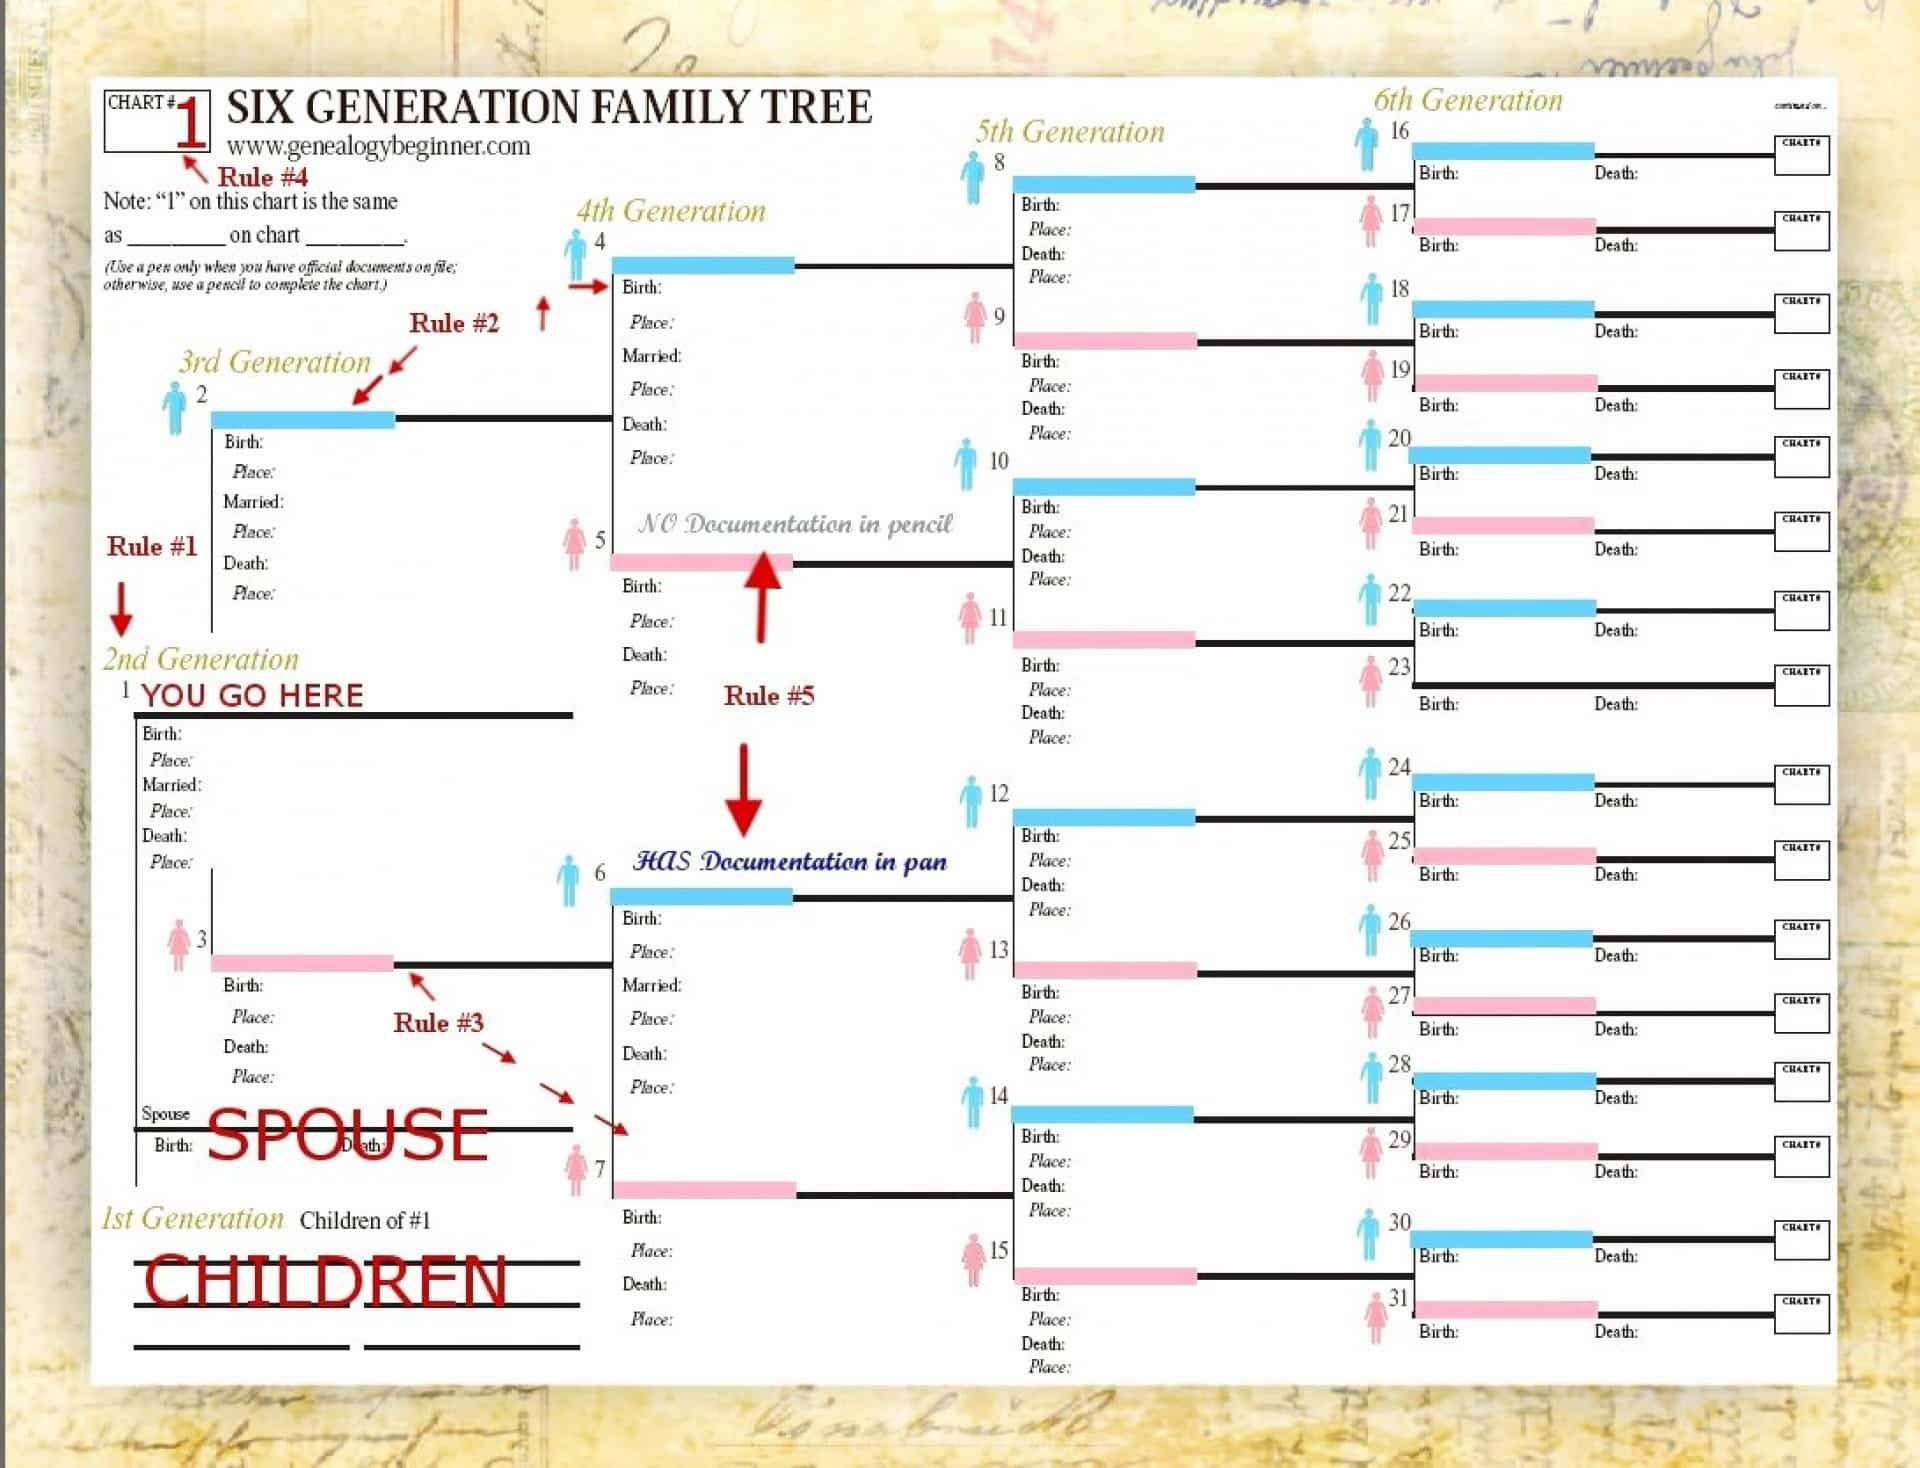 003 Magnificent Excel Family Tree Template Picture  7 Generation 4Full